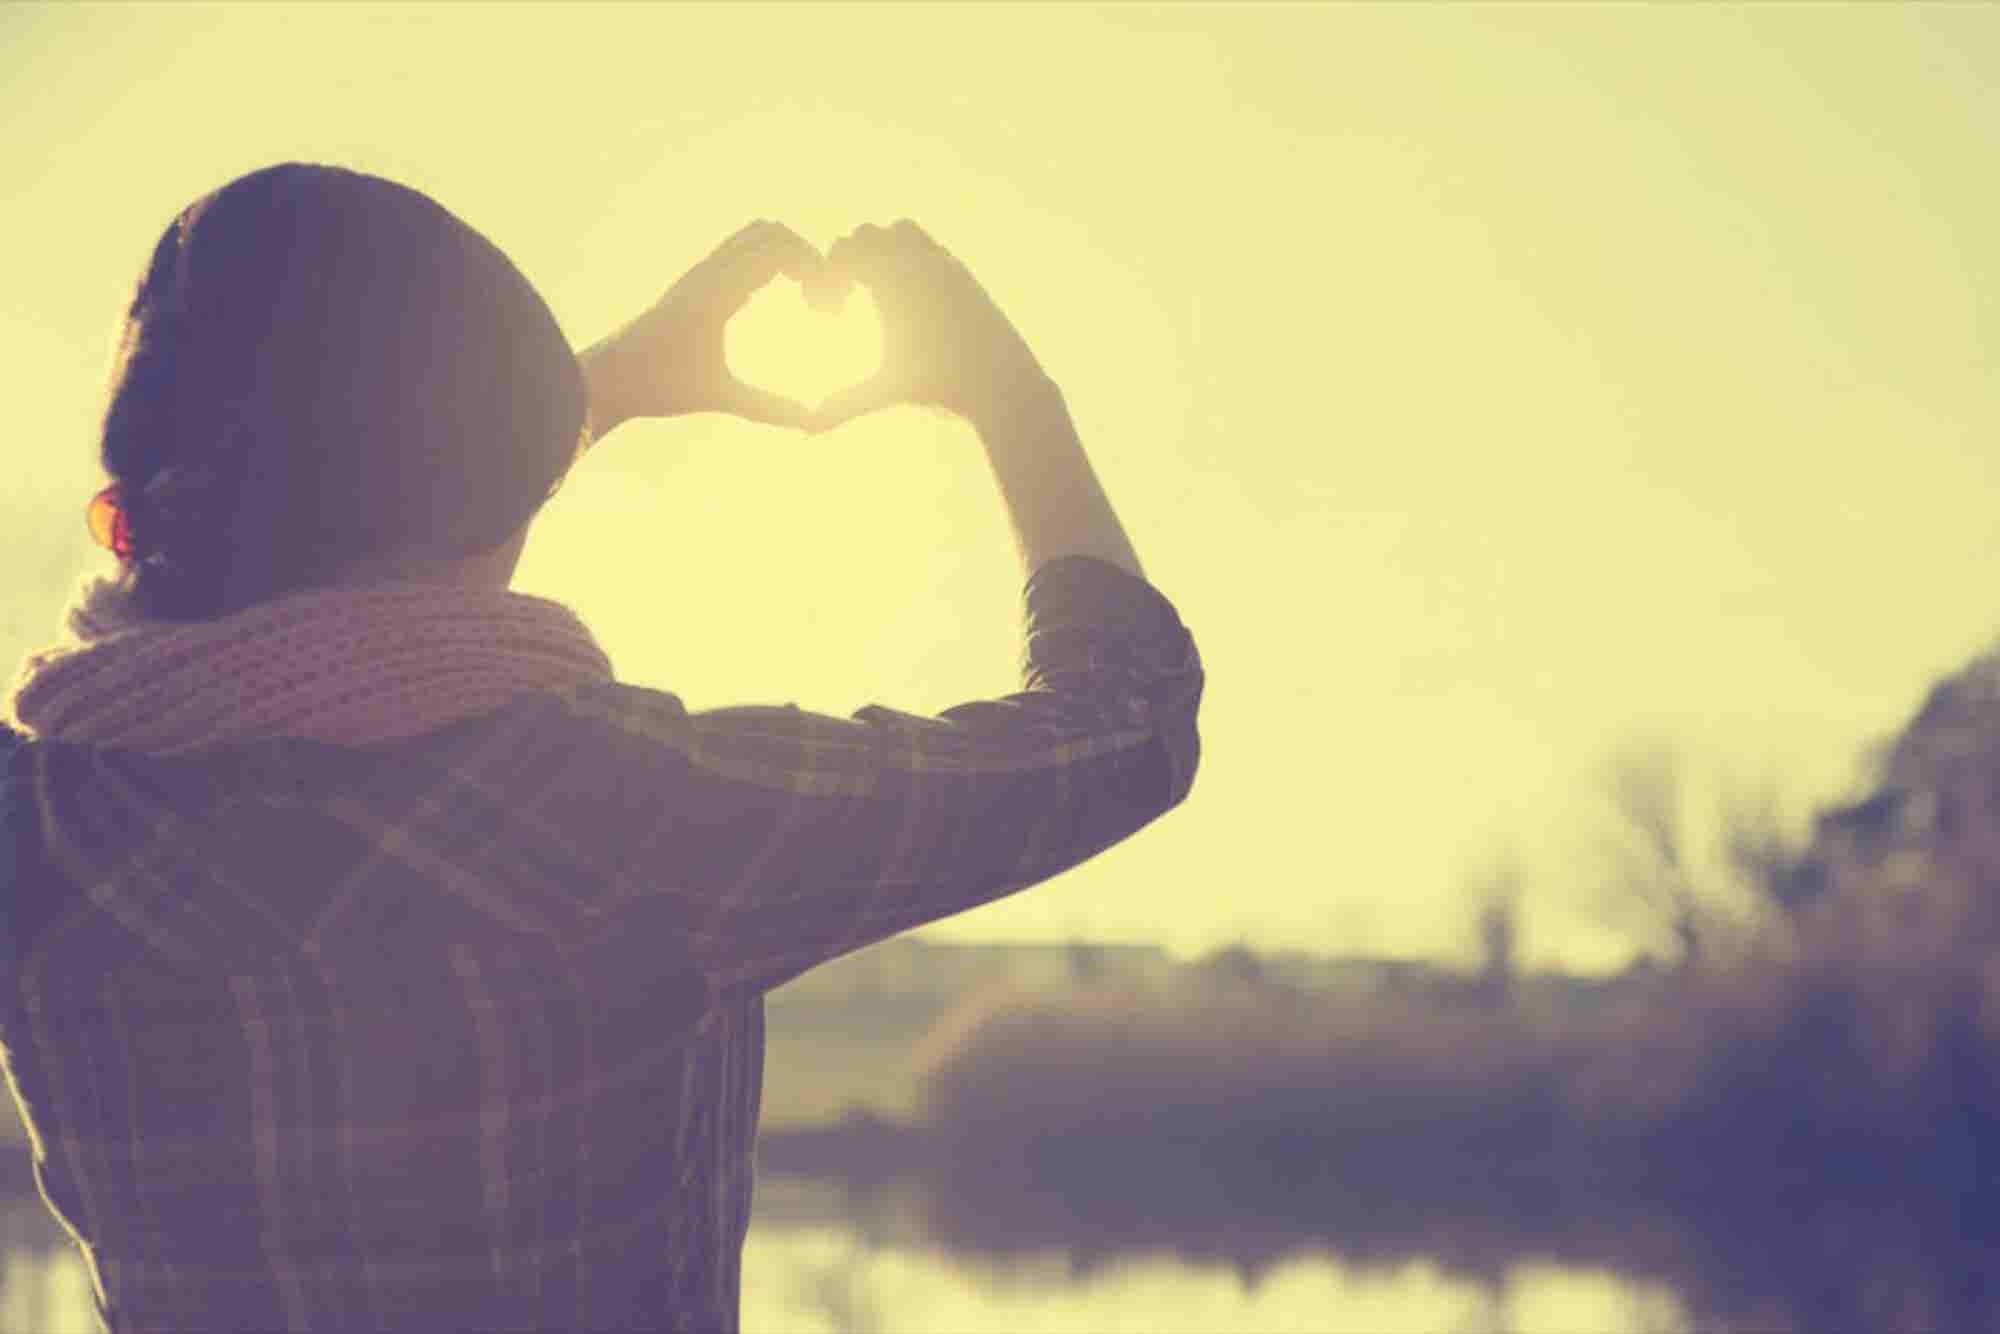 Before Falling in Love With Your Great Idea, Find Out If Anybody Wants It